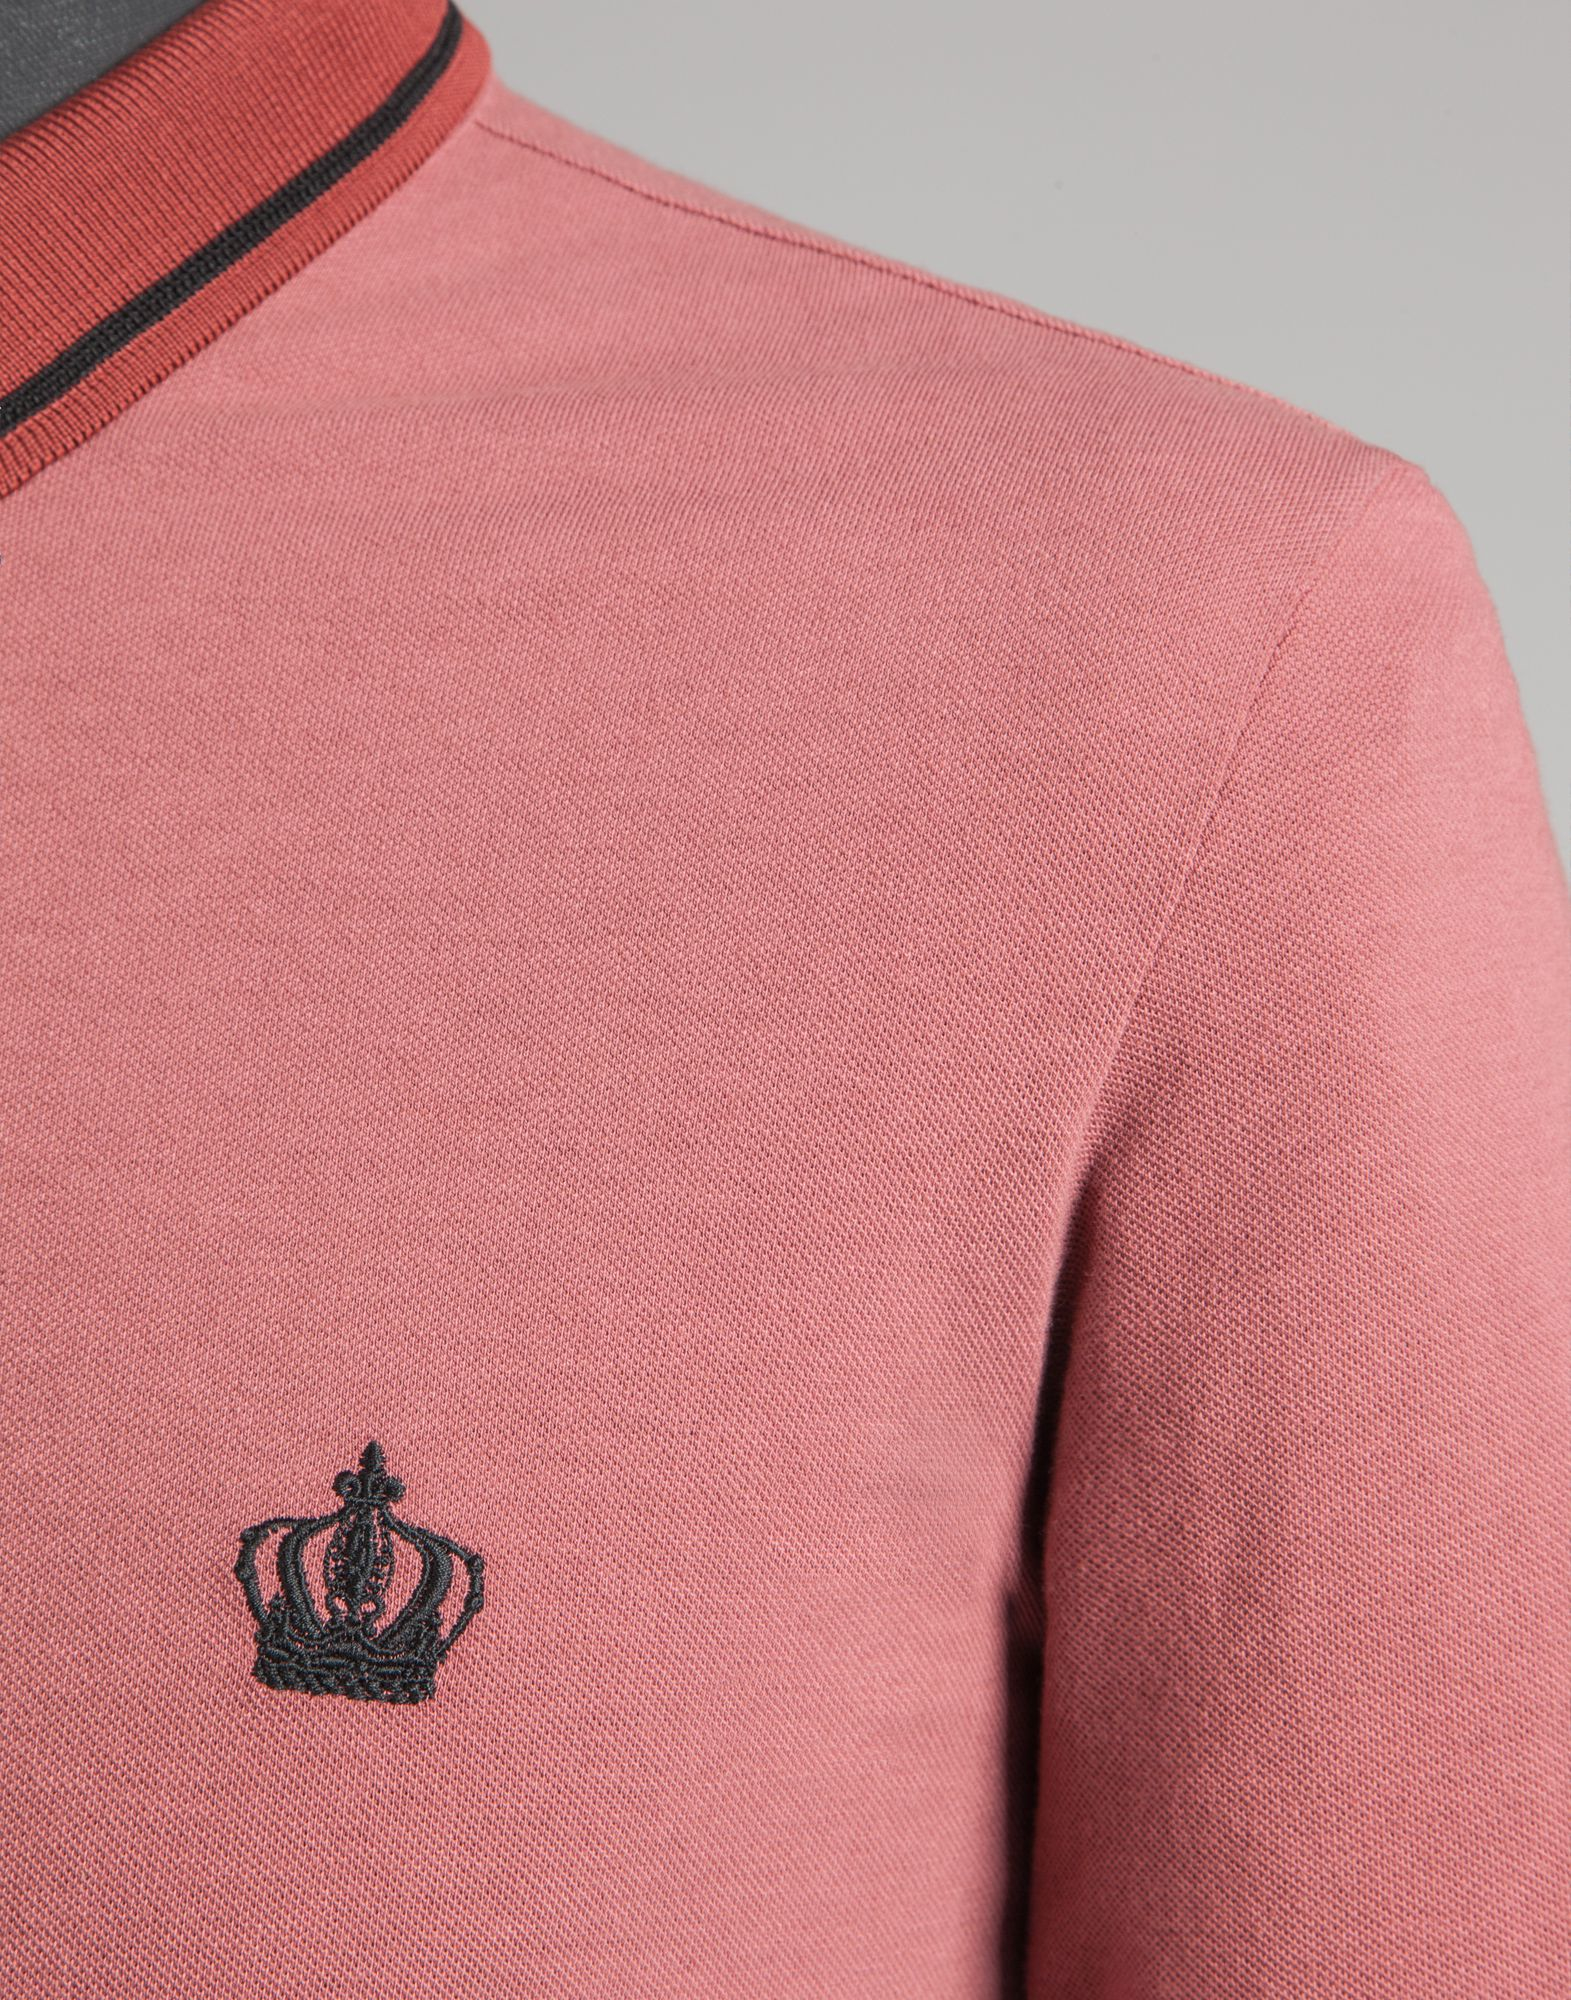 Dolce Gabbana Polo Shirt In Cotton Pique In Pink For Men